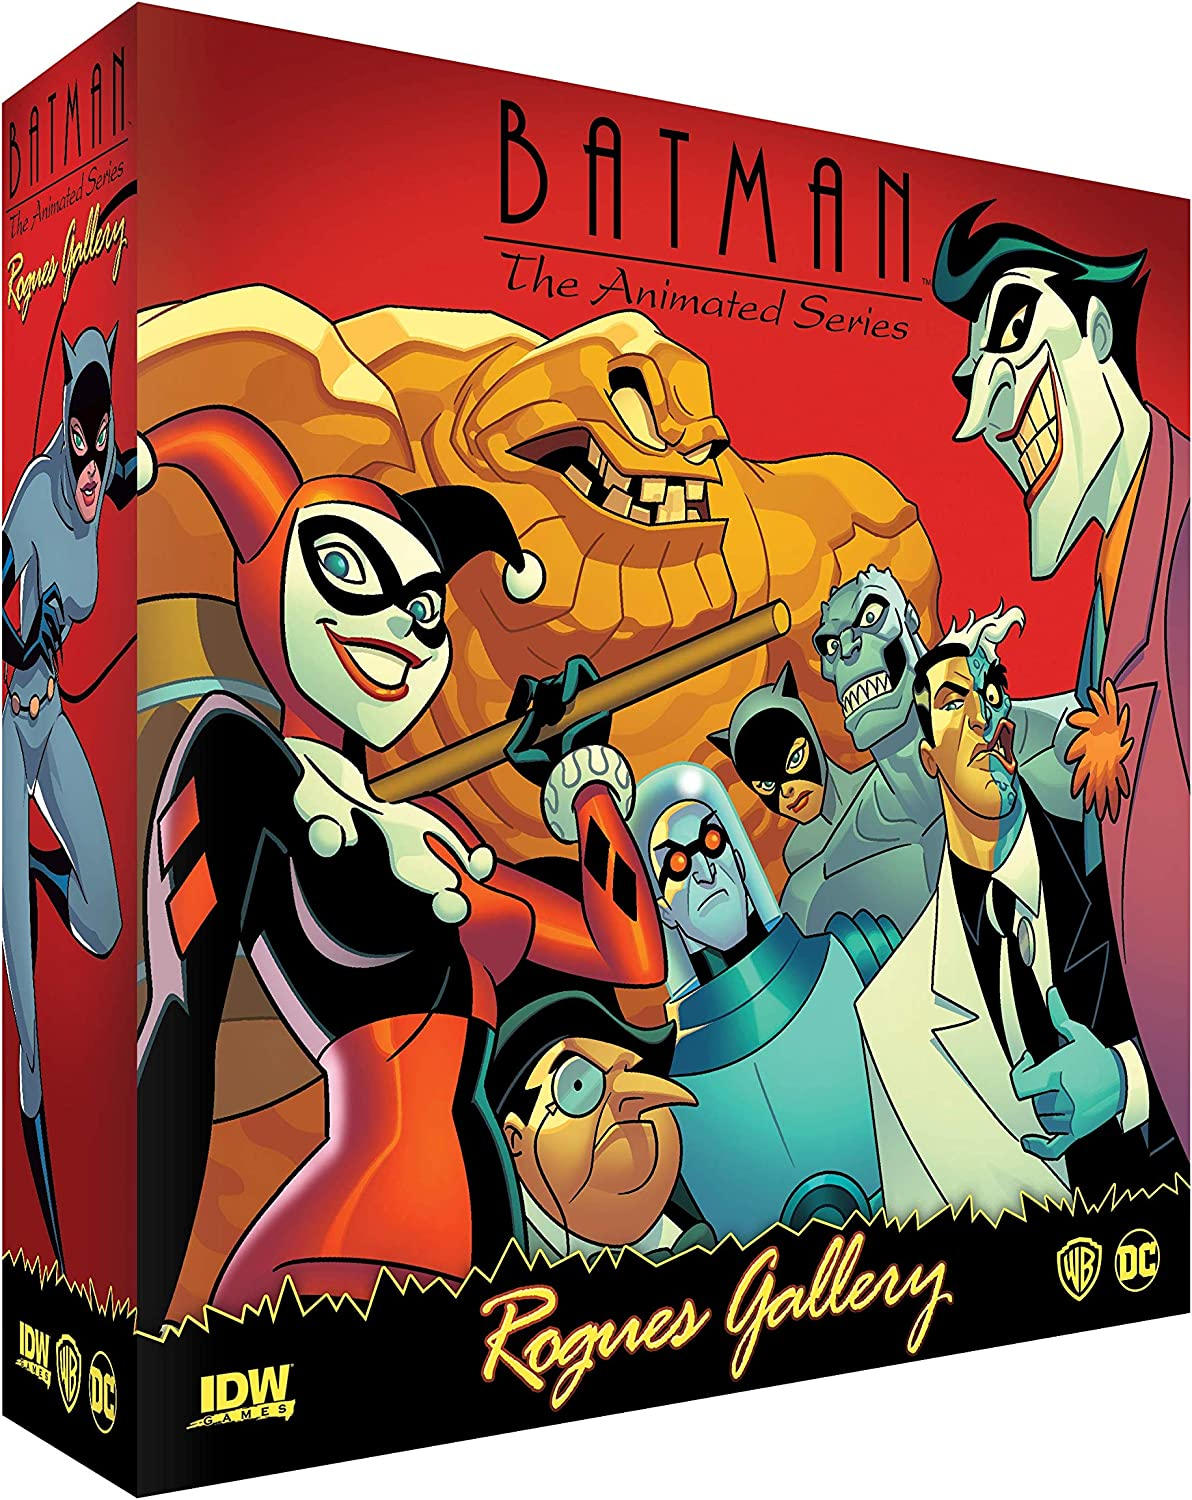 Amazon.com: Batman The Animated Series Rogues Gallery: Toys & Games